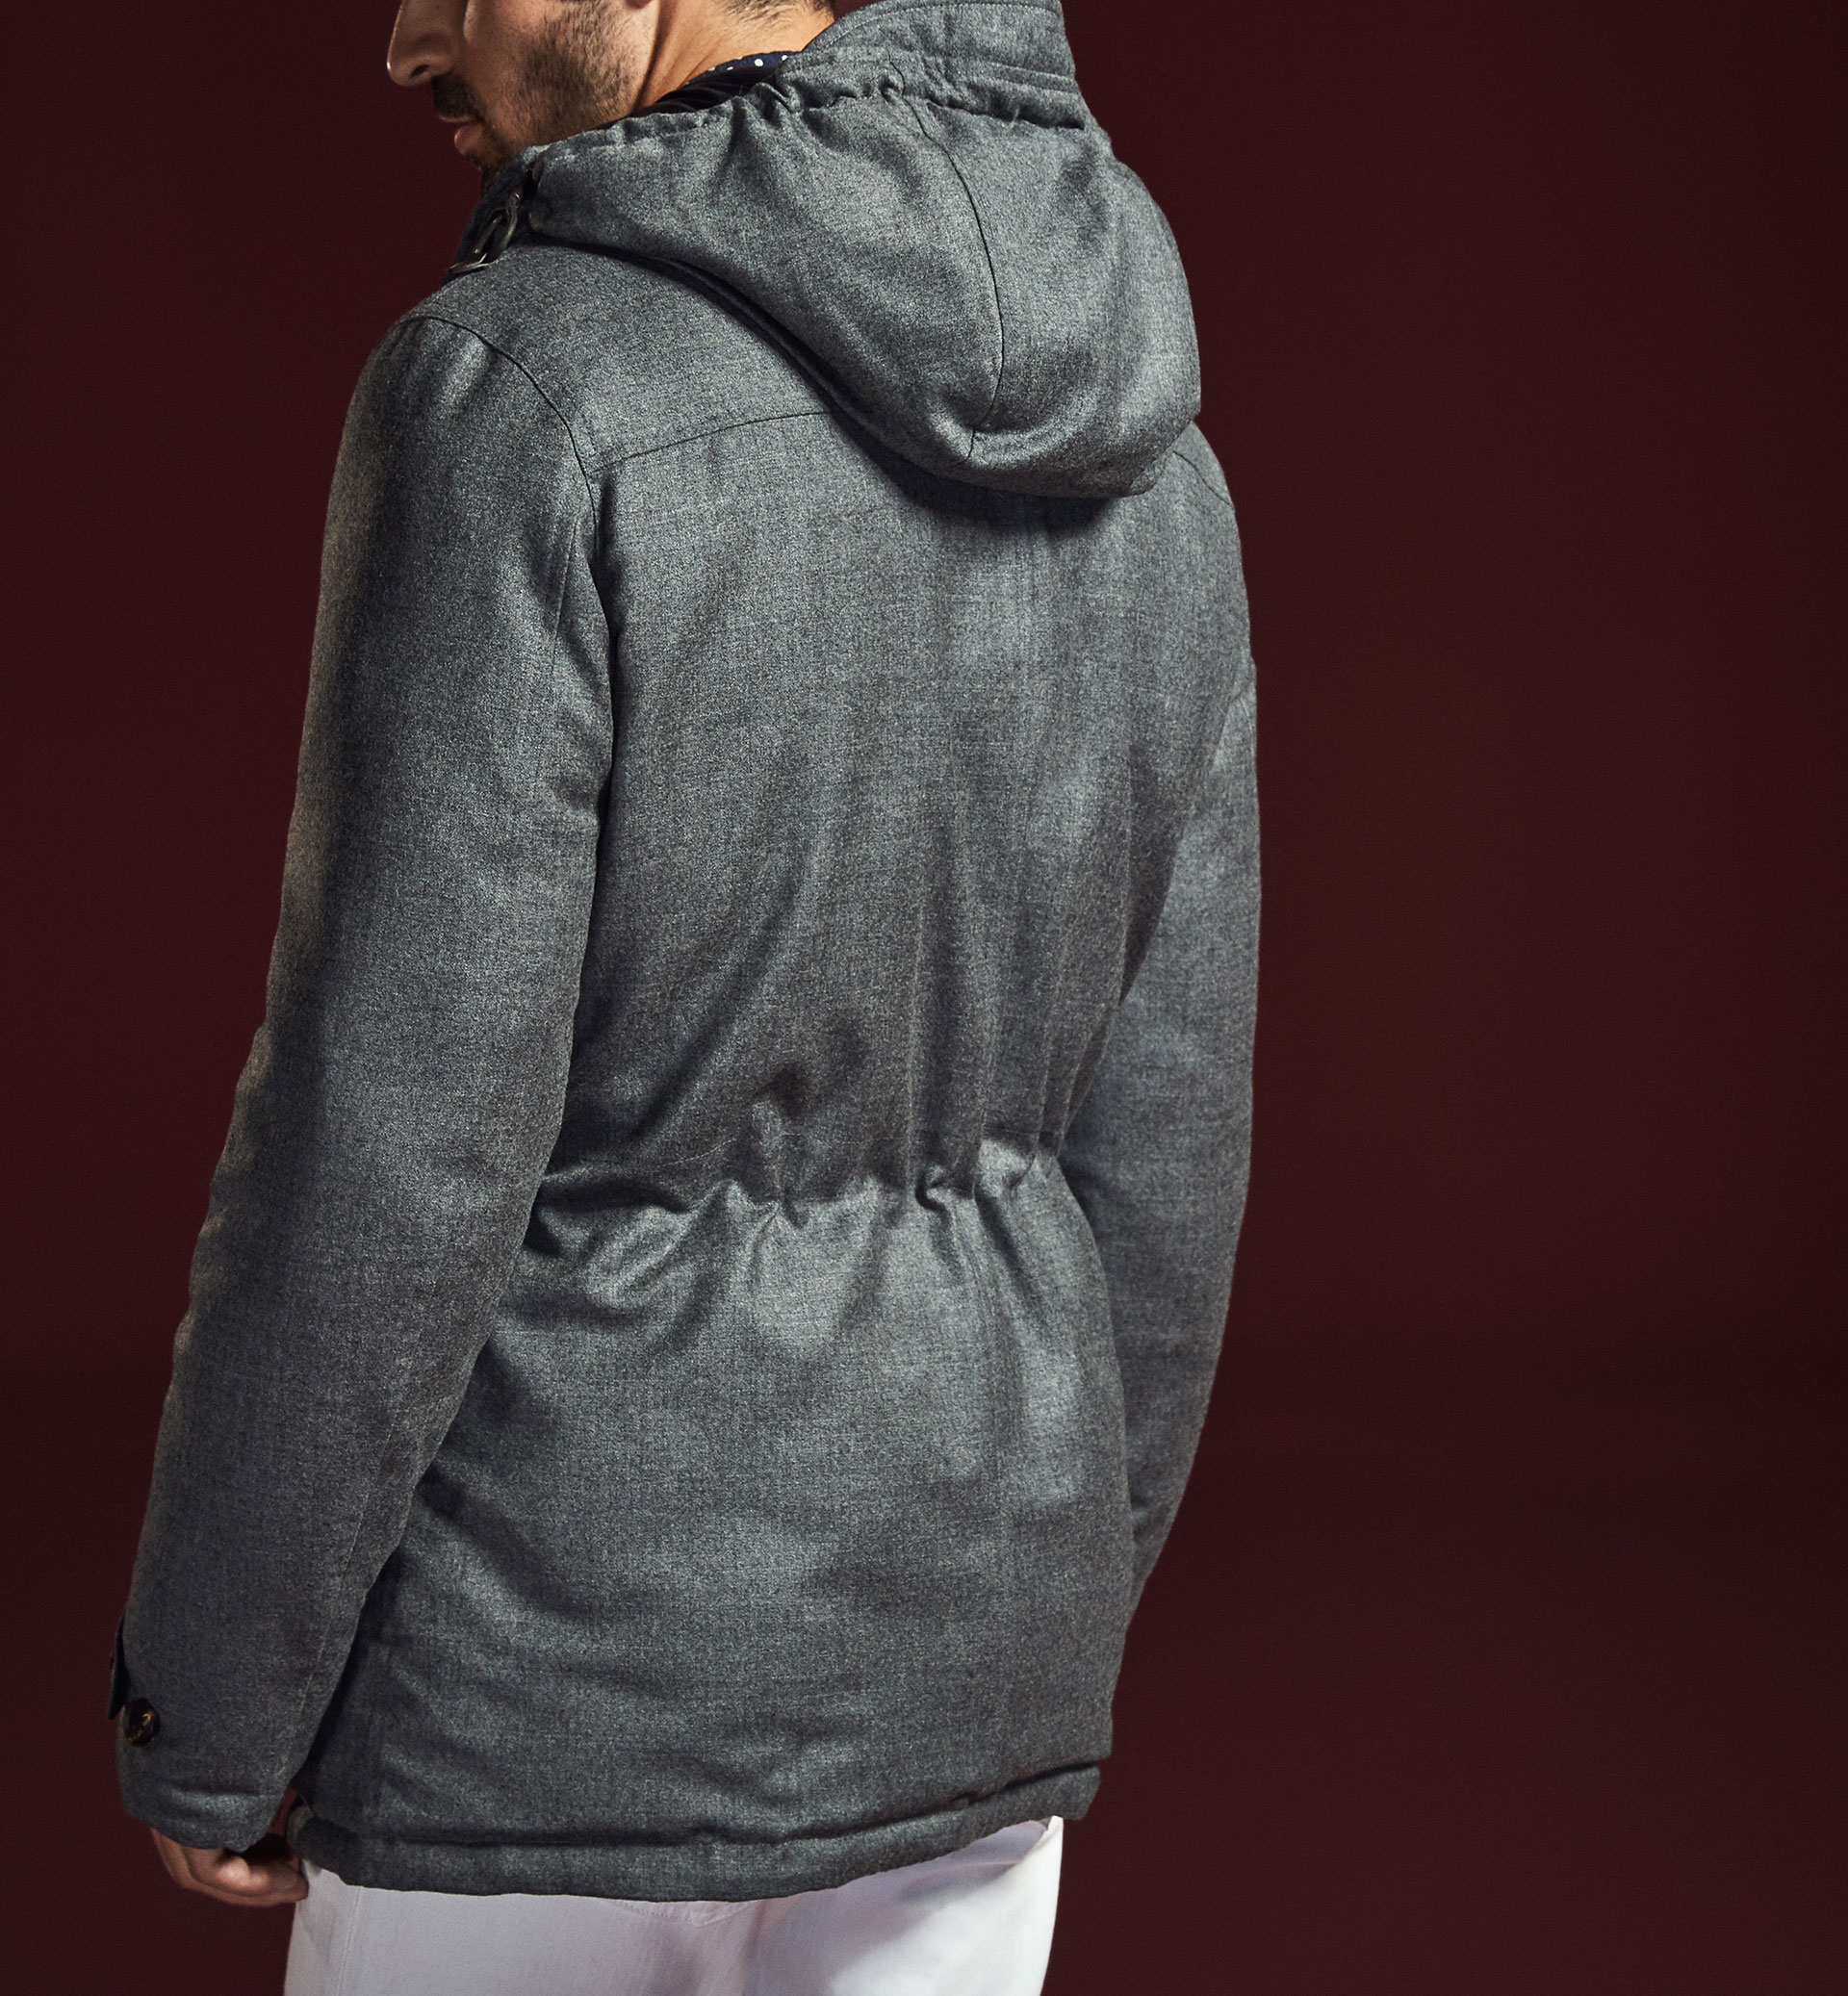 LIMITED EDITION REVERSIBLE GREY TECHNICAL TRENCH COAT